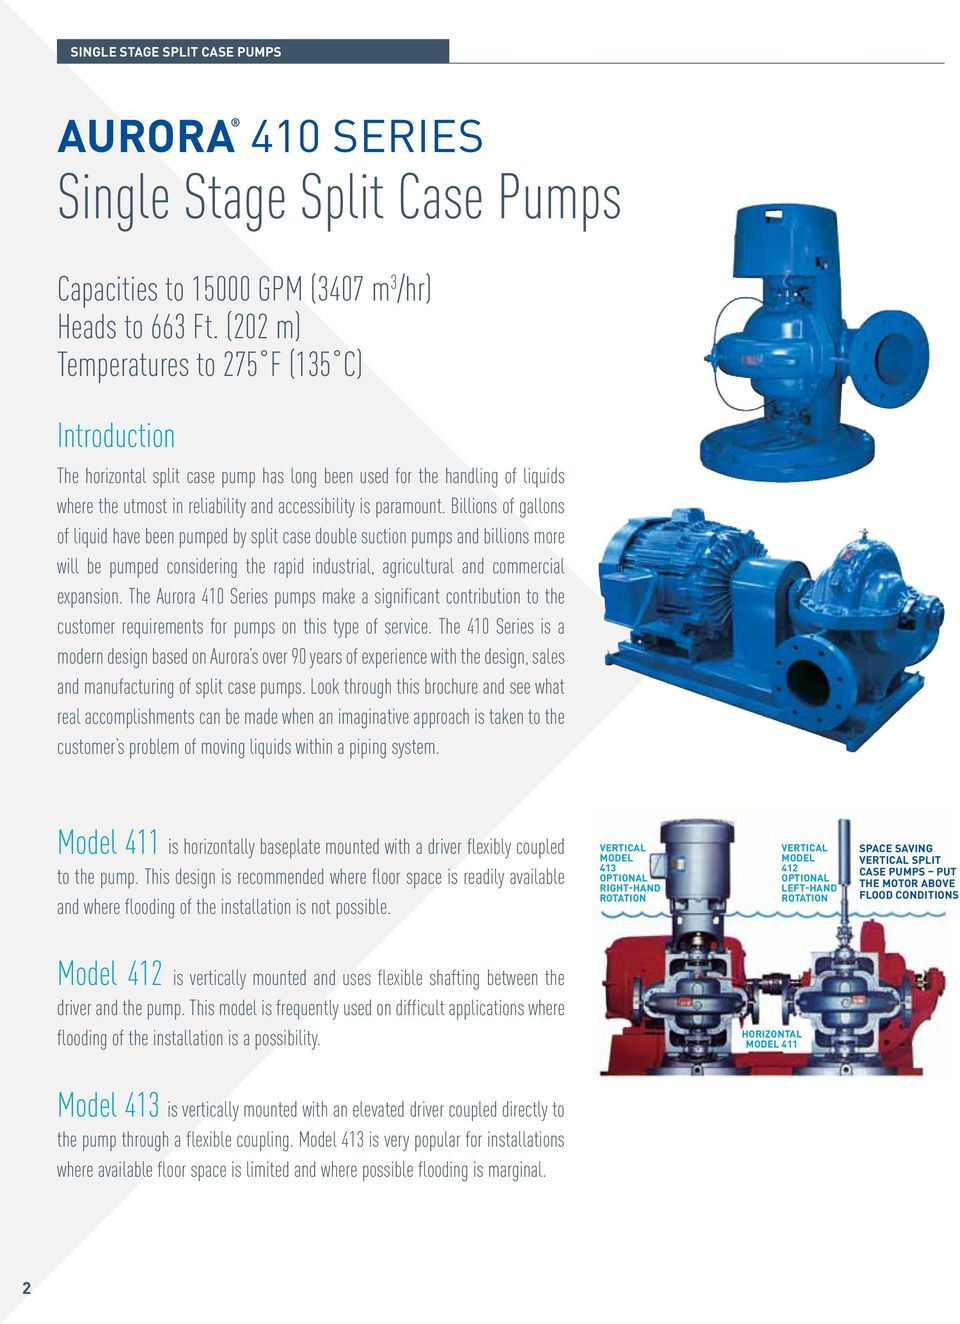 Model 413 AURORA  410 Series SINGLE STAGE SPLIT CASE PUMPS - PDF